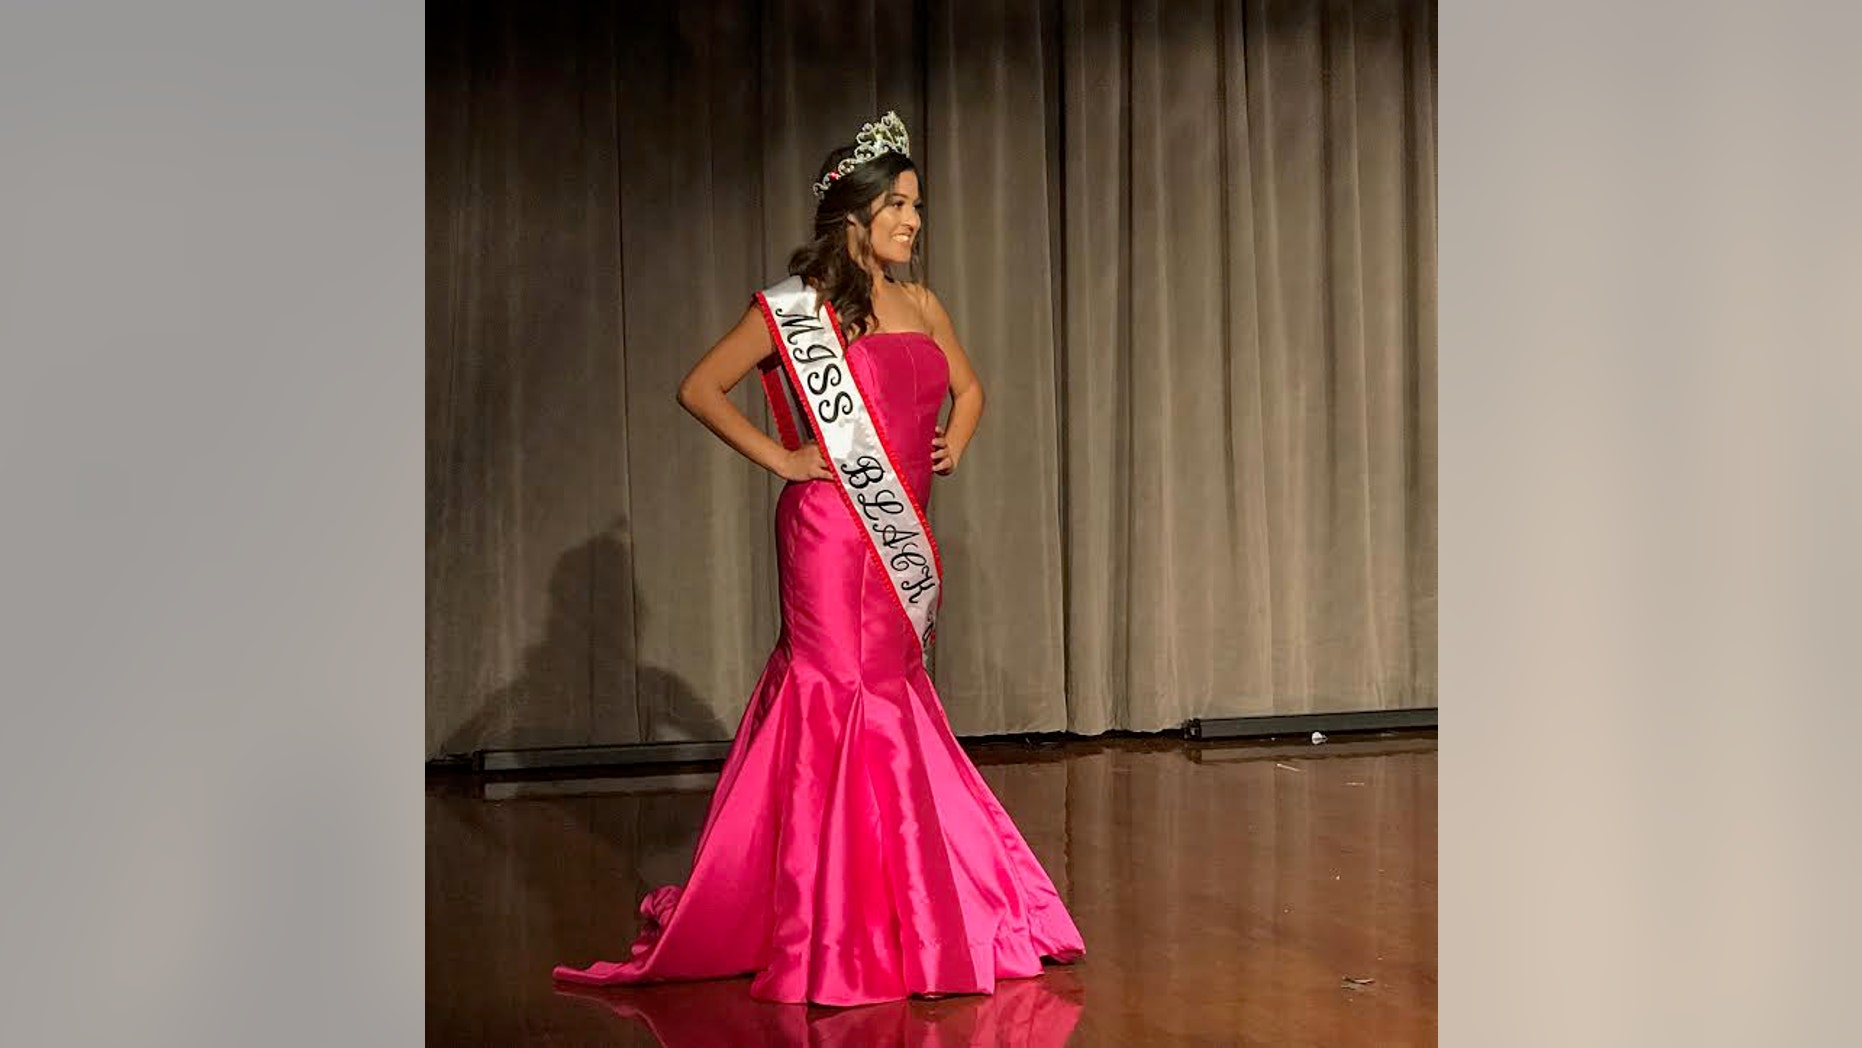 Rachael Malonson after she was crowned Miss Black University of Texas.